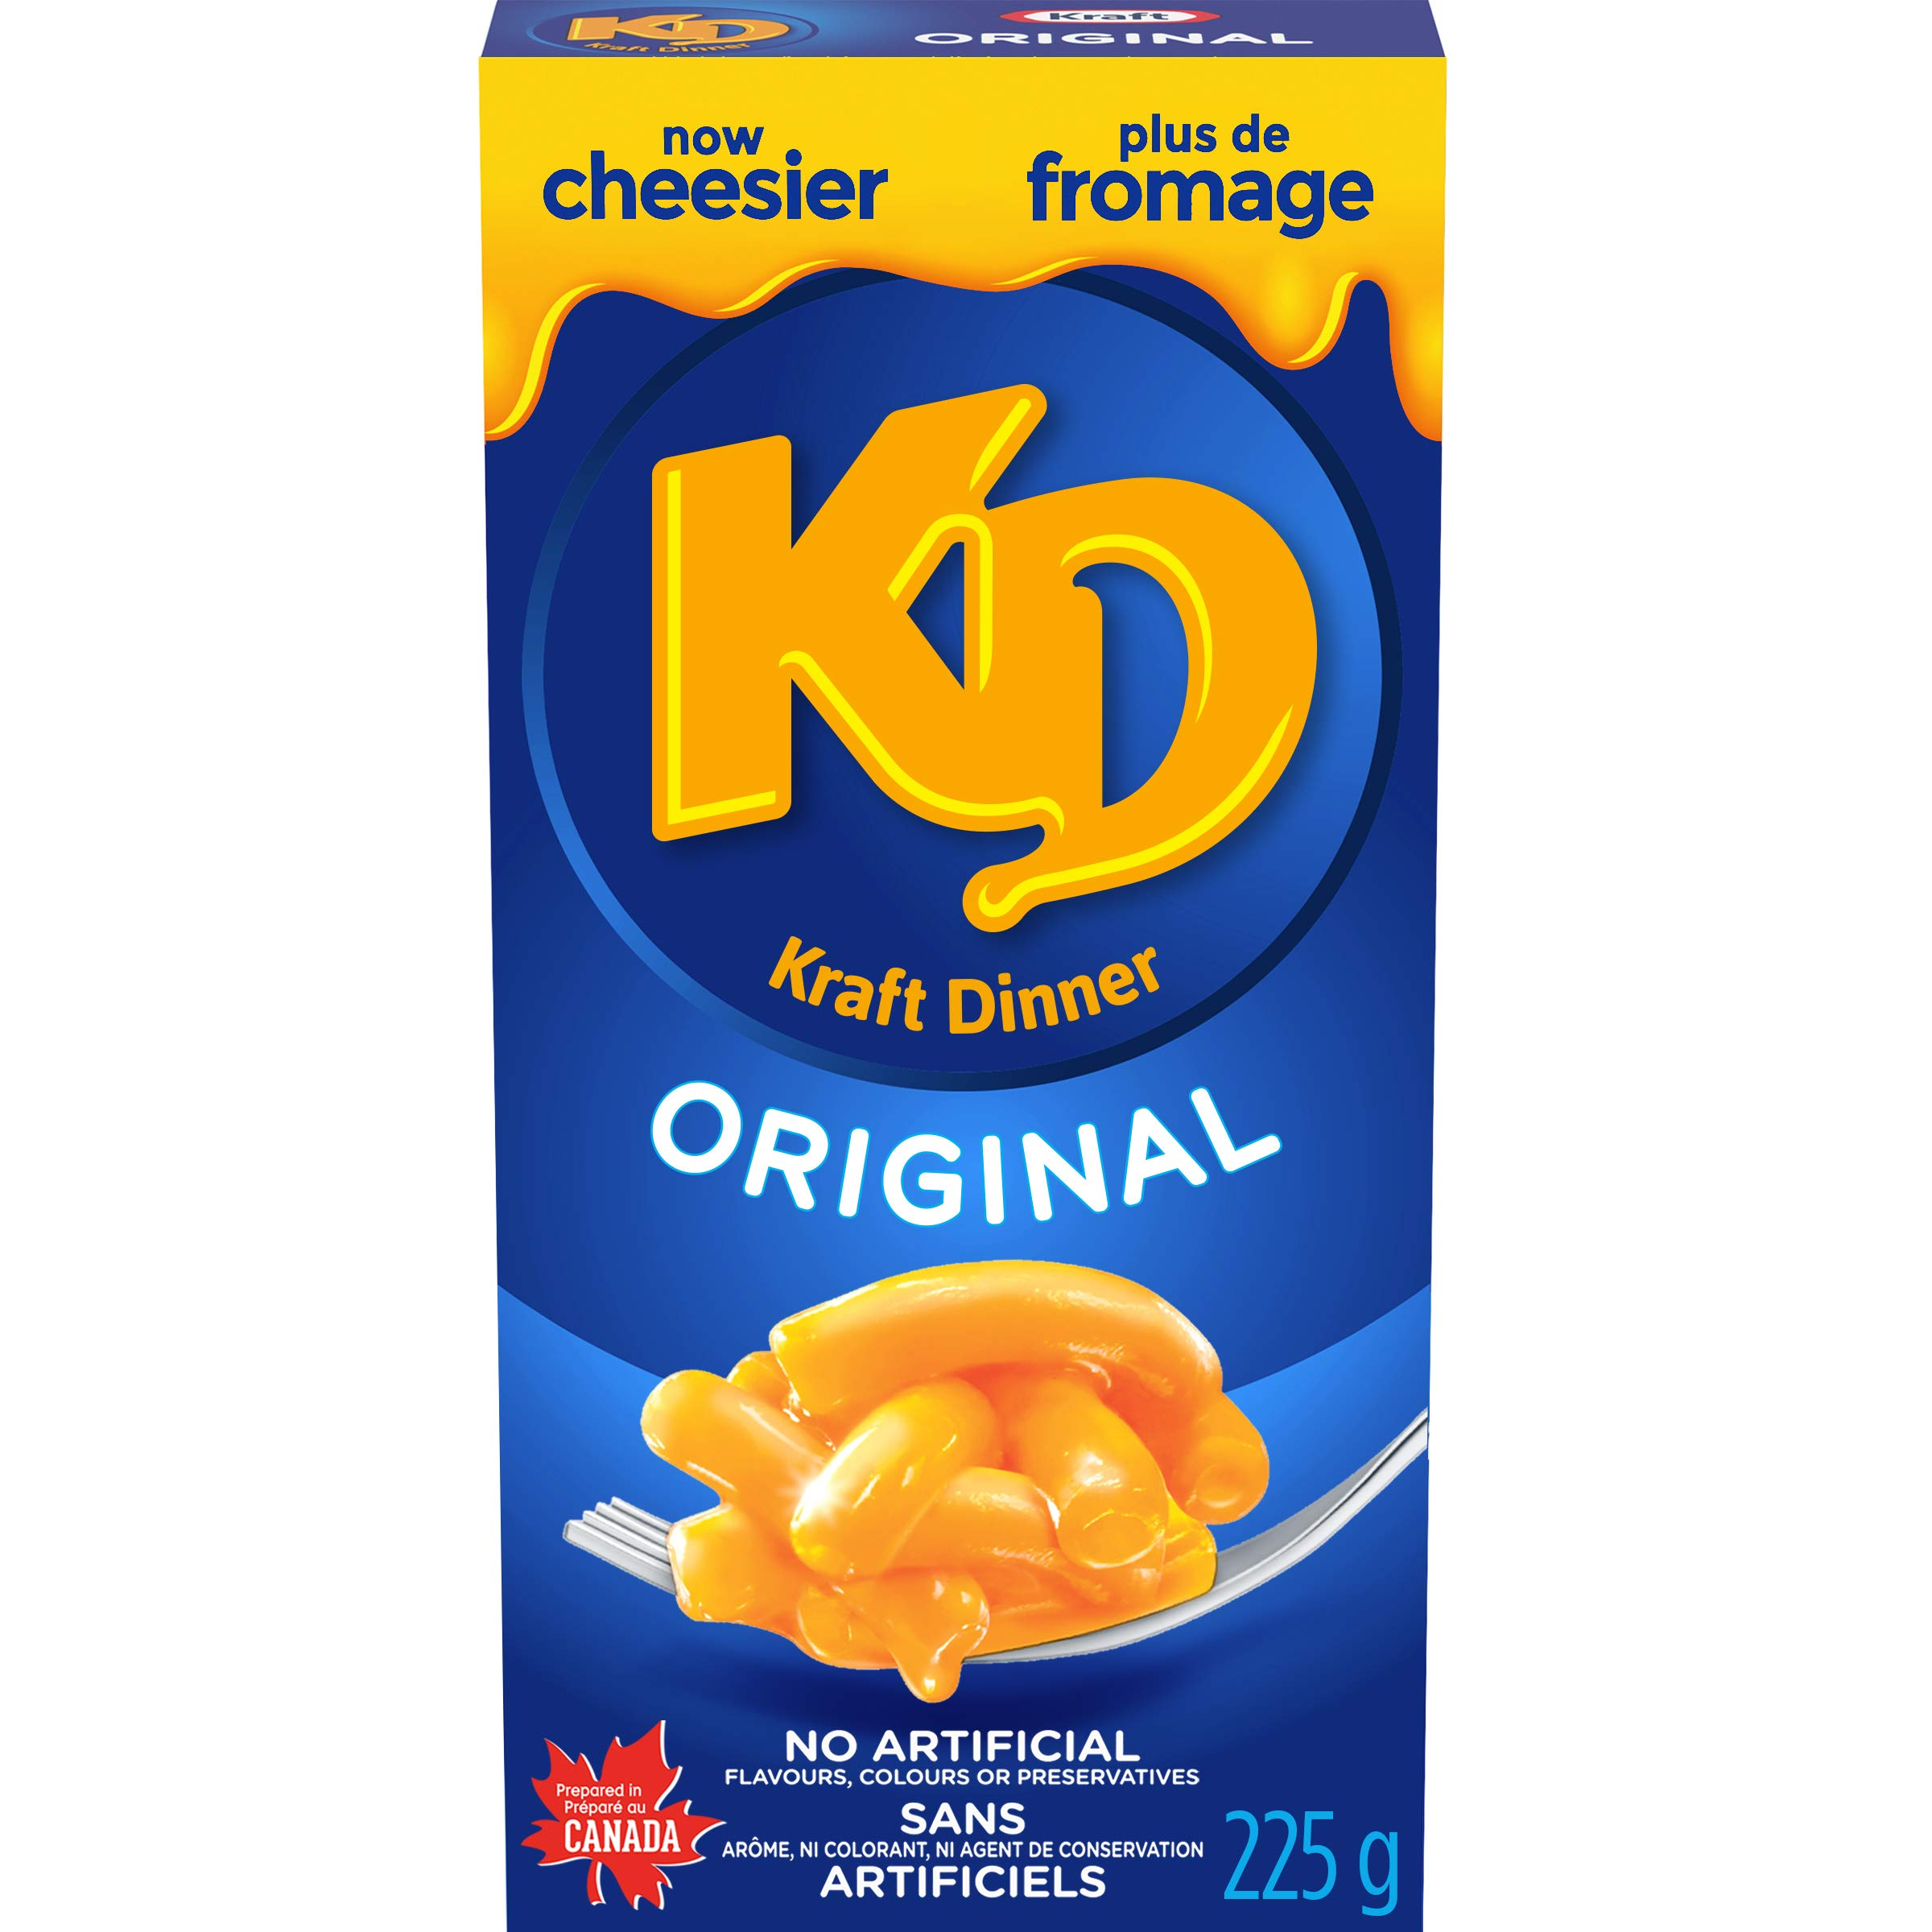 KD Kraft Dinner Original Macaroni and Cheese, 225g {Imported from Canada}